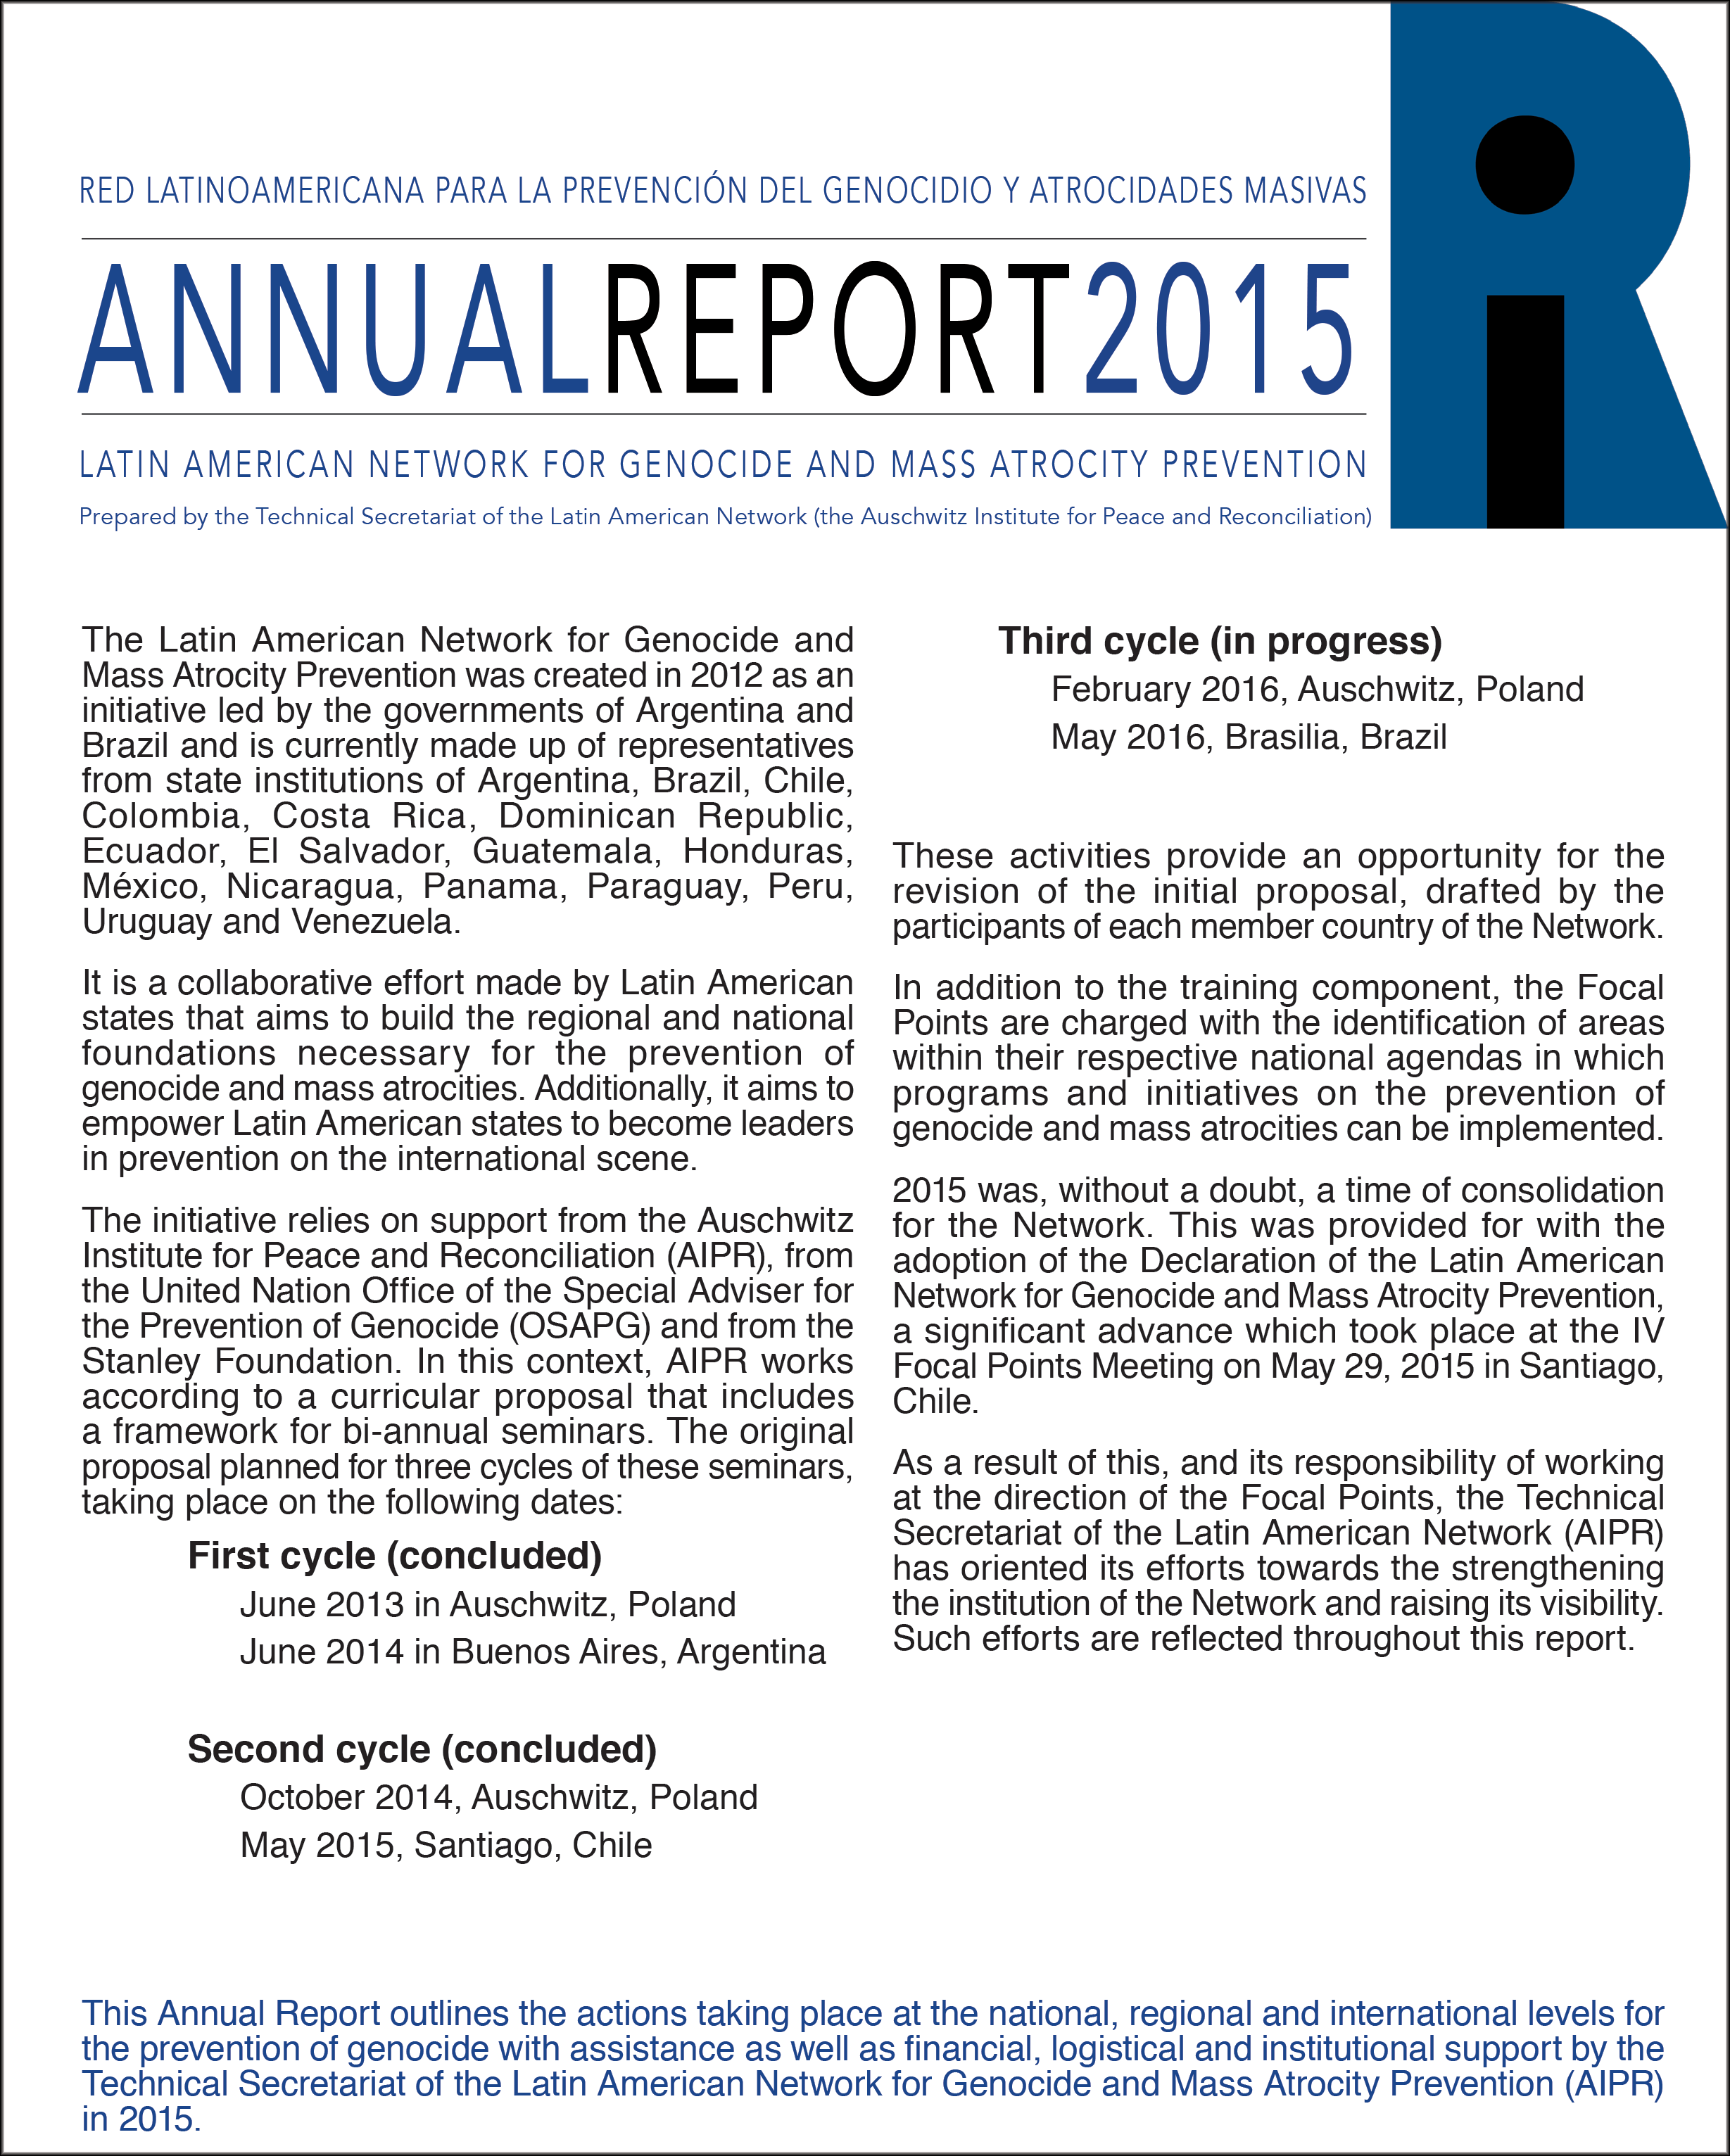 Annual Report of the Latin American Network - 2014